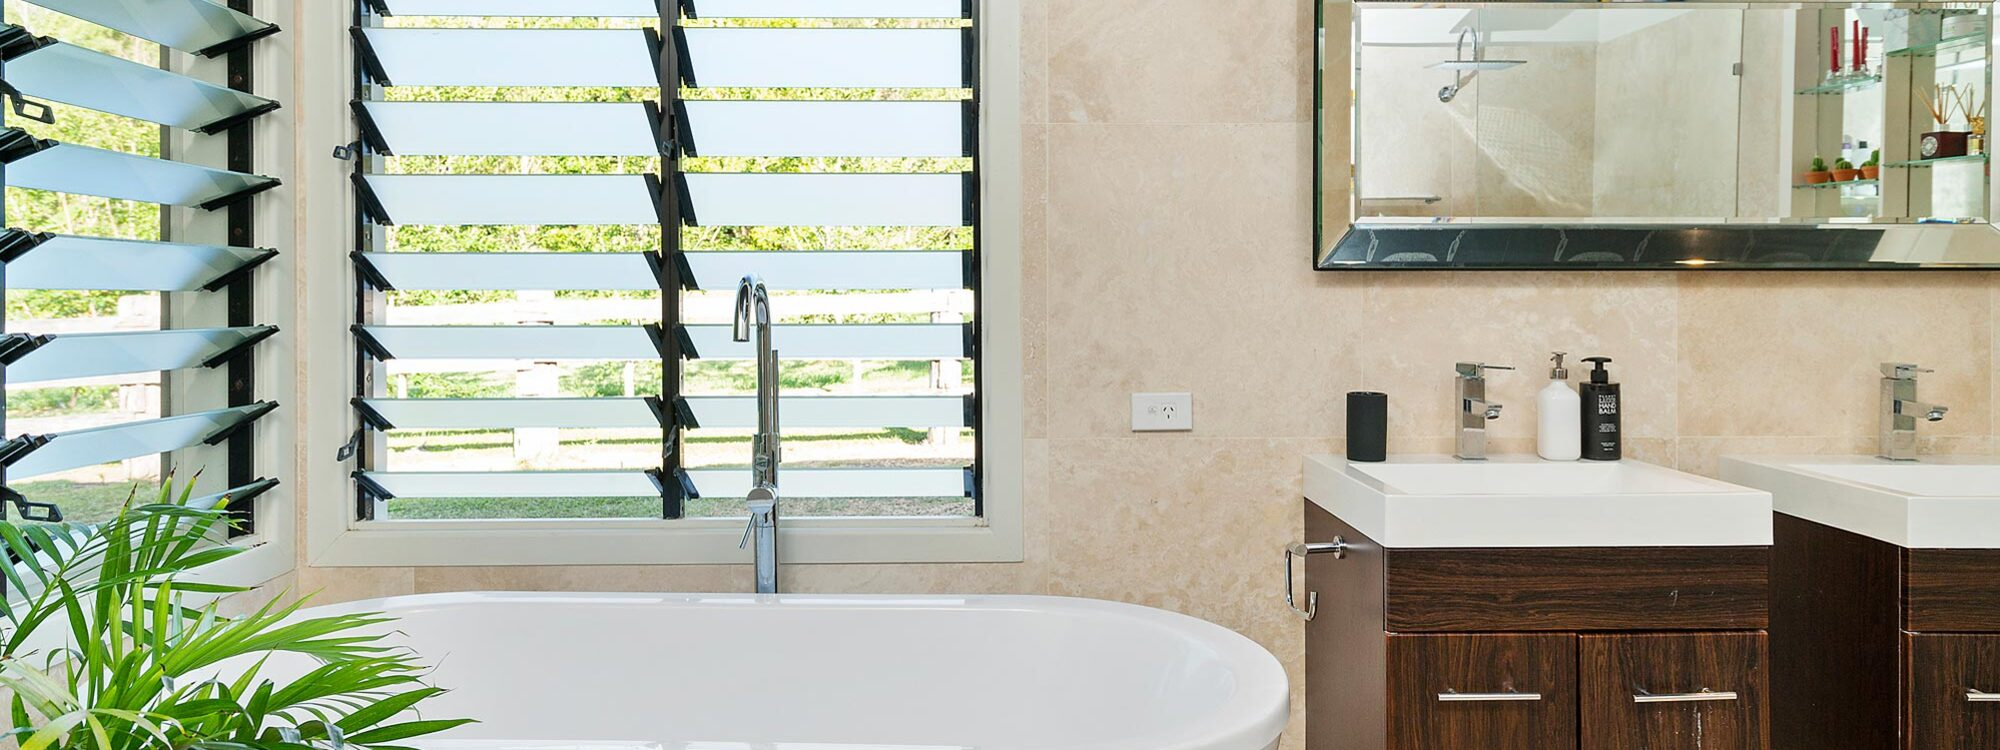 Bellbird - Byron Bay - Master Bedroom Ensuite Bathroom a